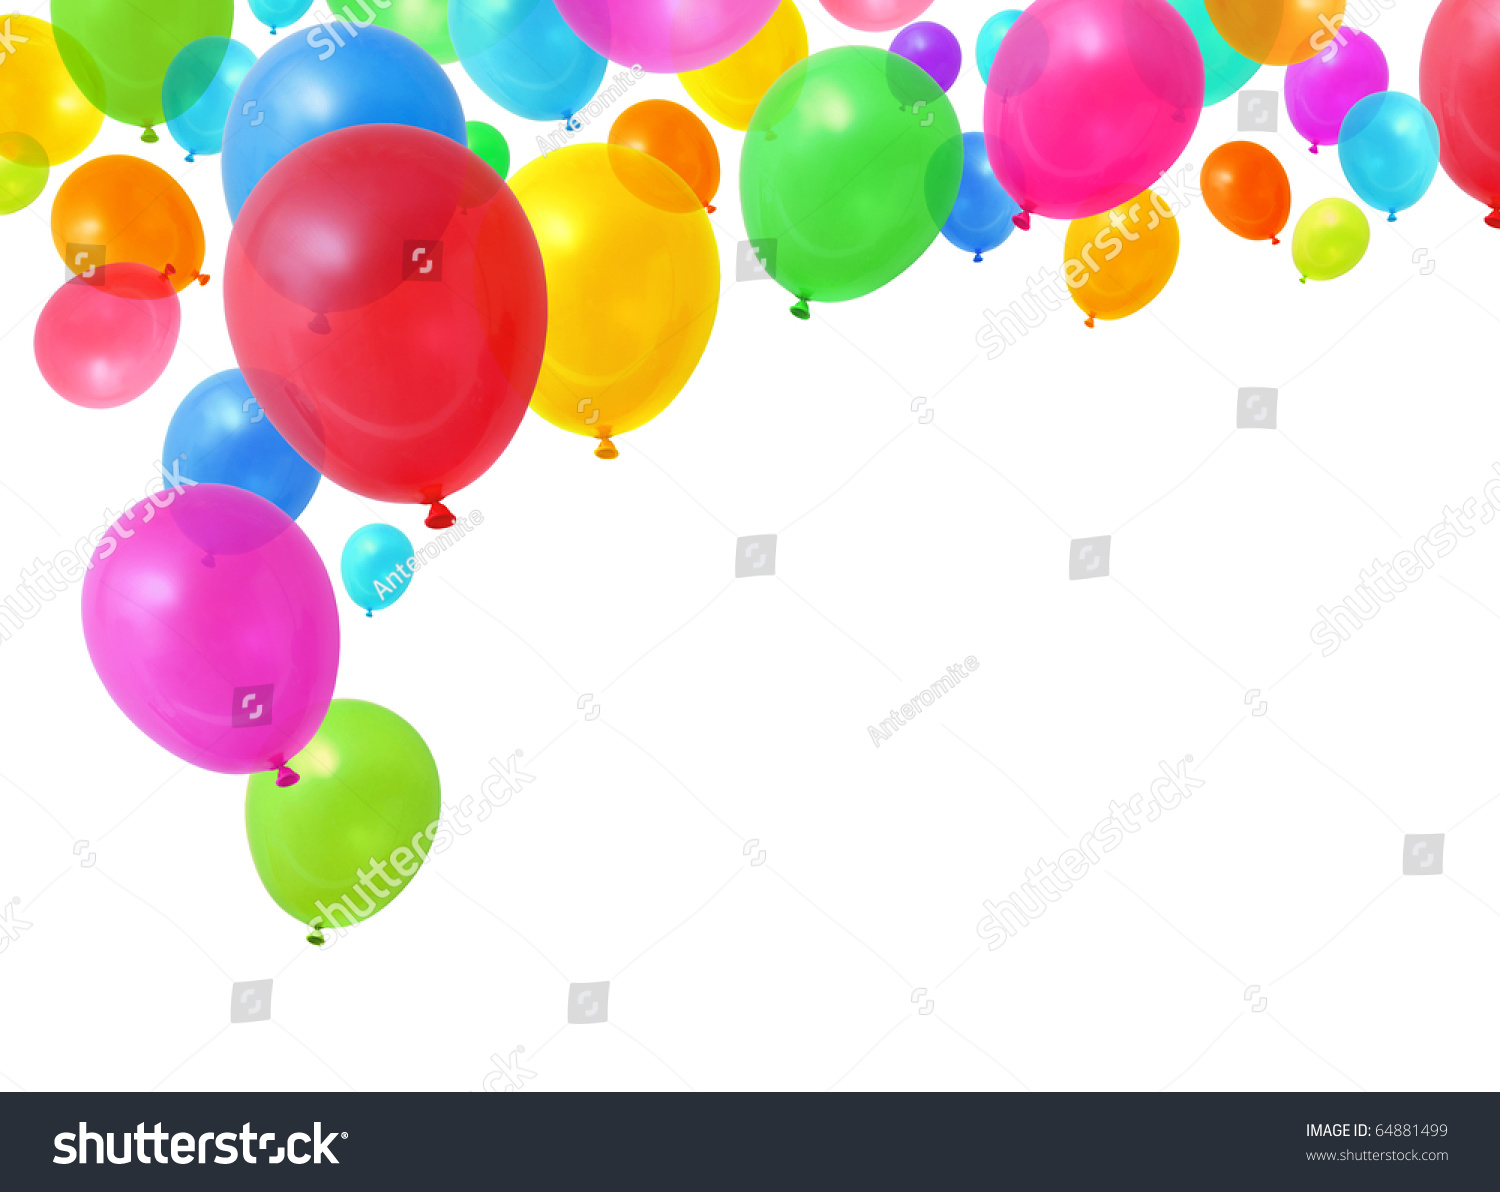 Colorful birthday party balloons flying on stock for Background decoration images